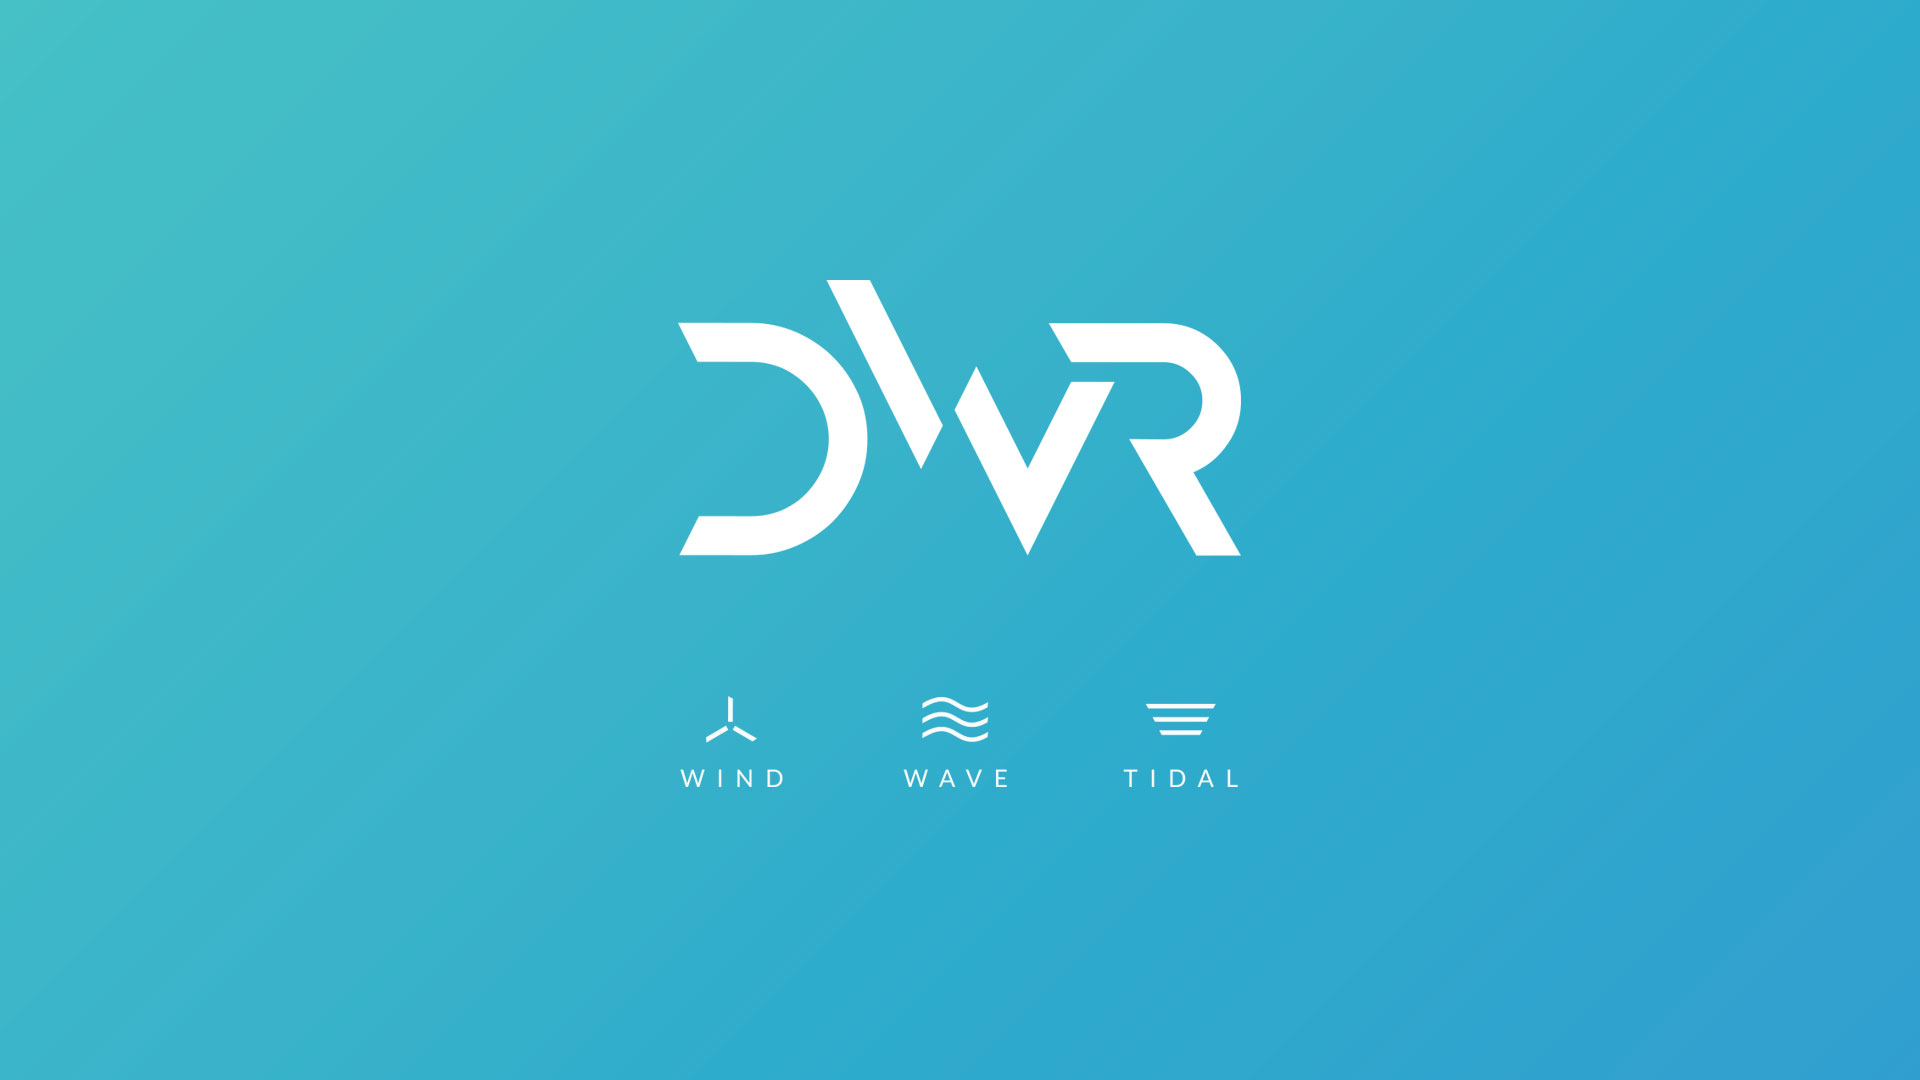 Brand identity | DWR Offshore | Creative design and marketing for the marine offshore industry